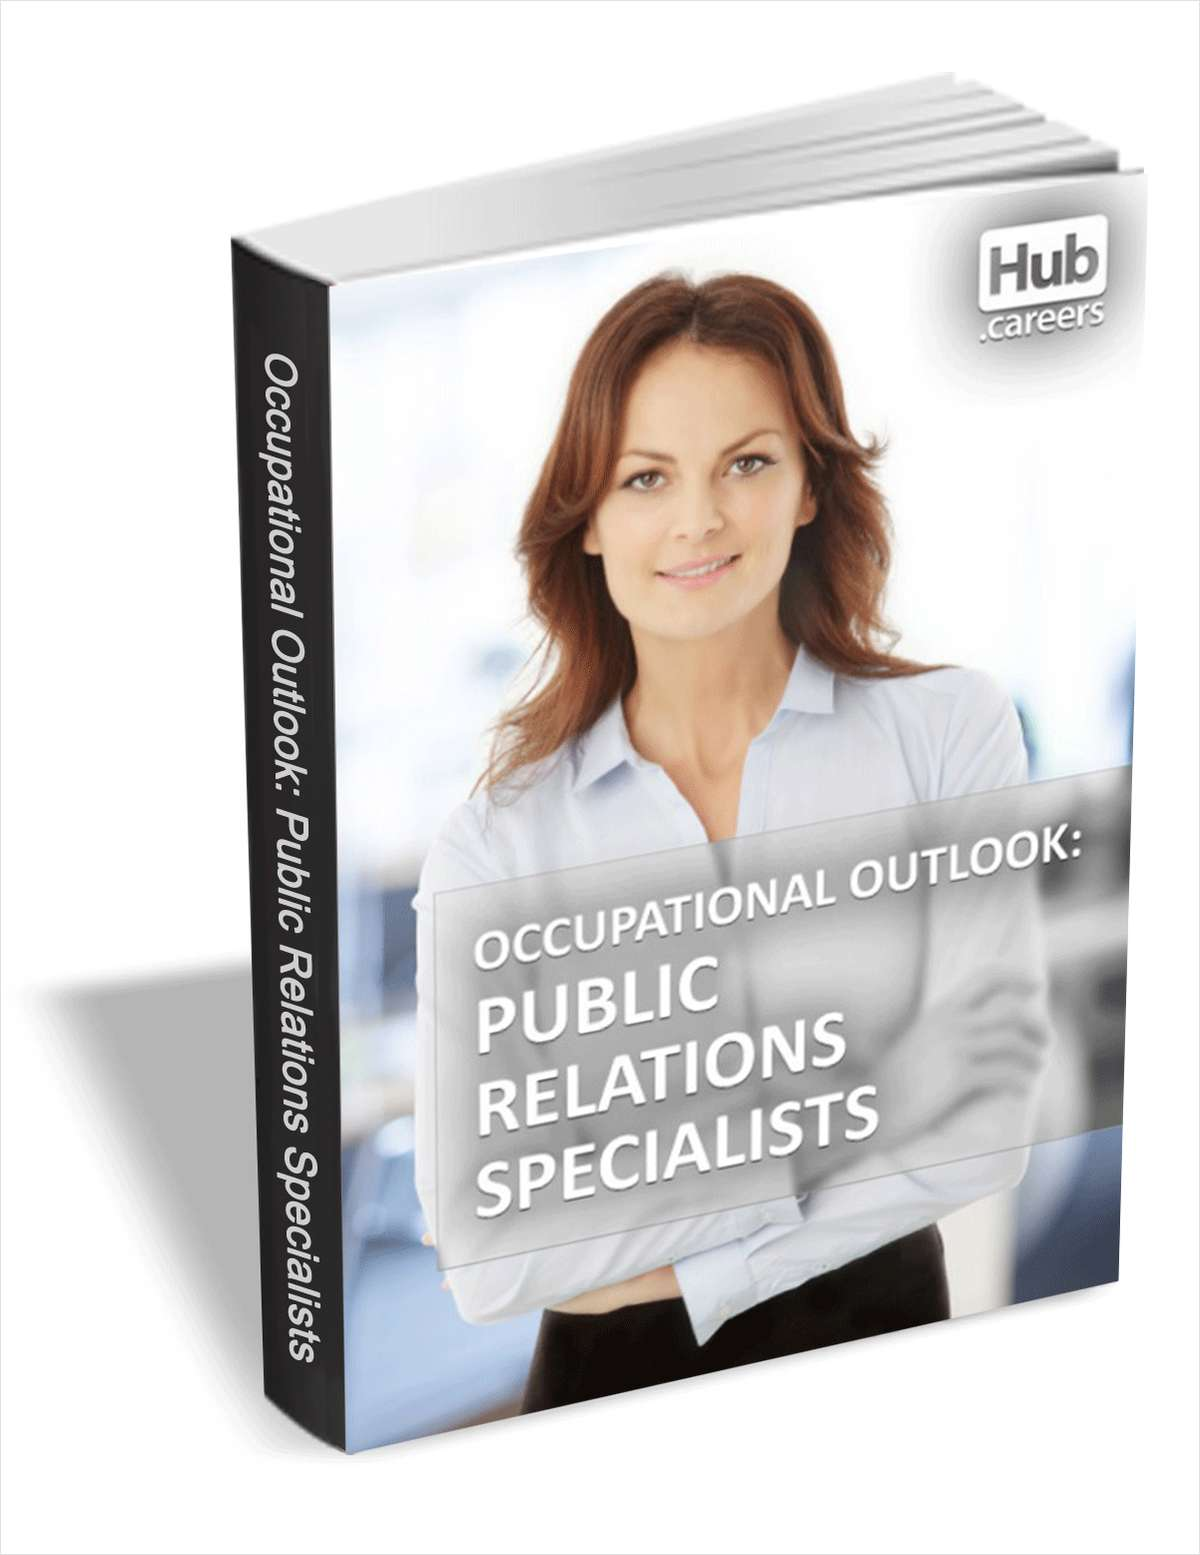 Public Relations Specialists - Occupational Outlook